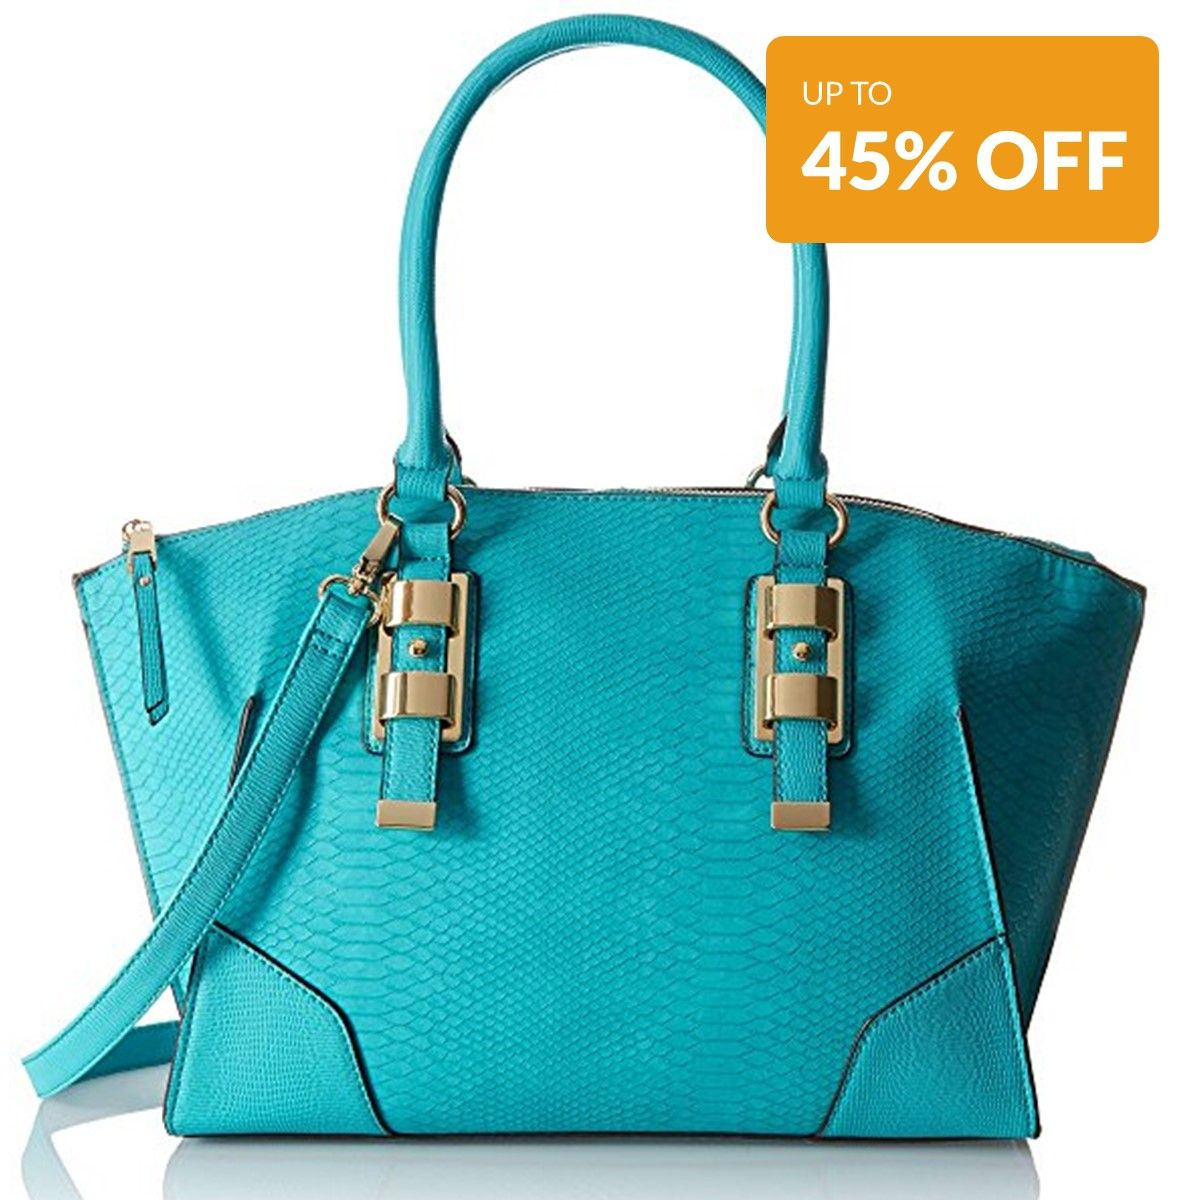 948a2ae4a9 Up to 45% off on this Coach Pebbled Primrose Satchel!